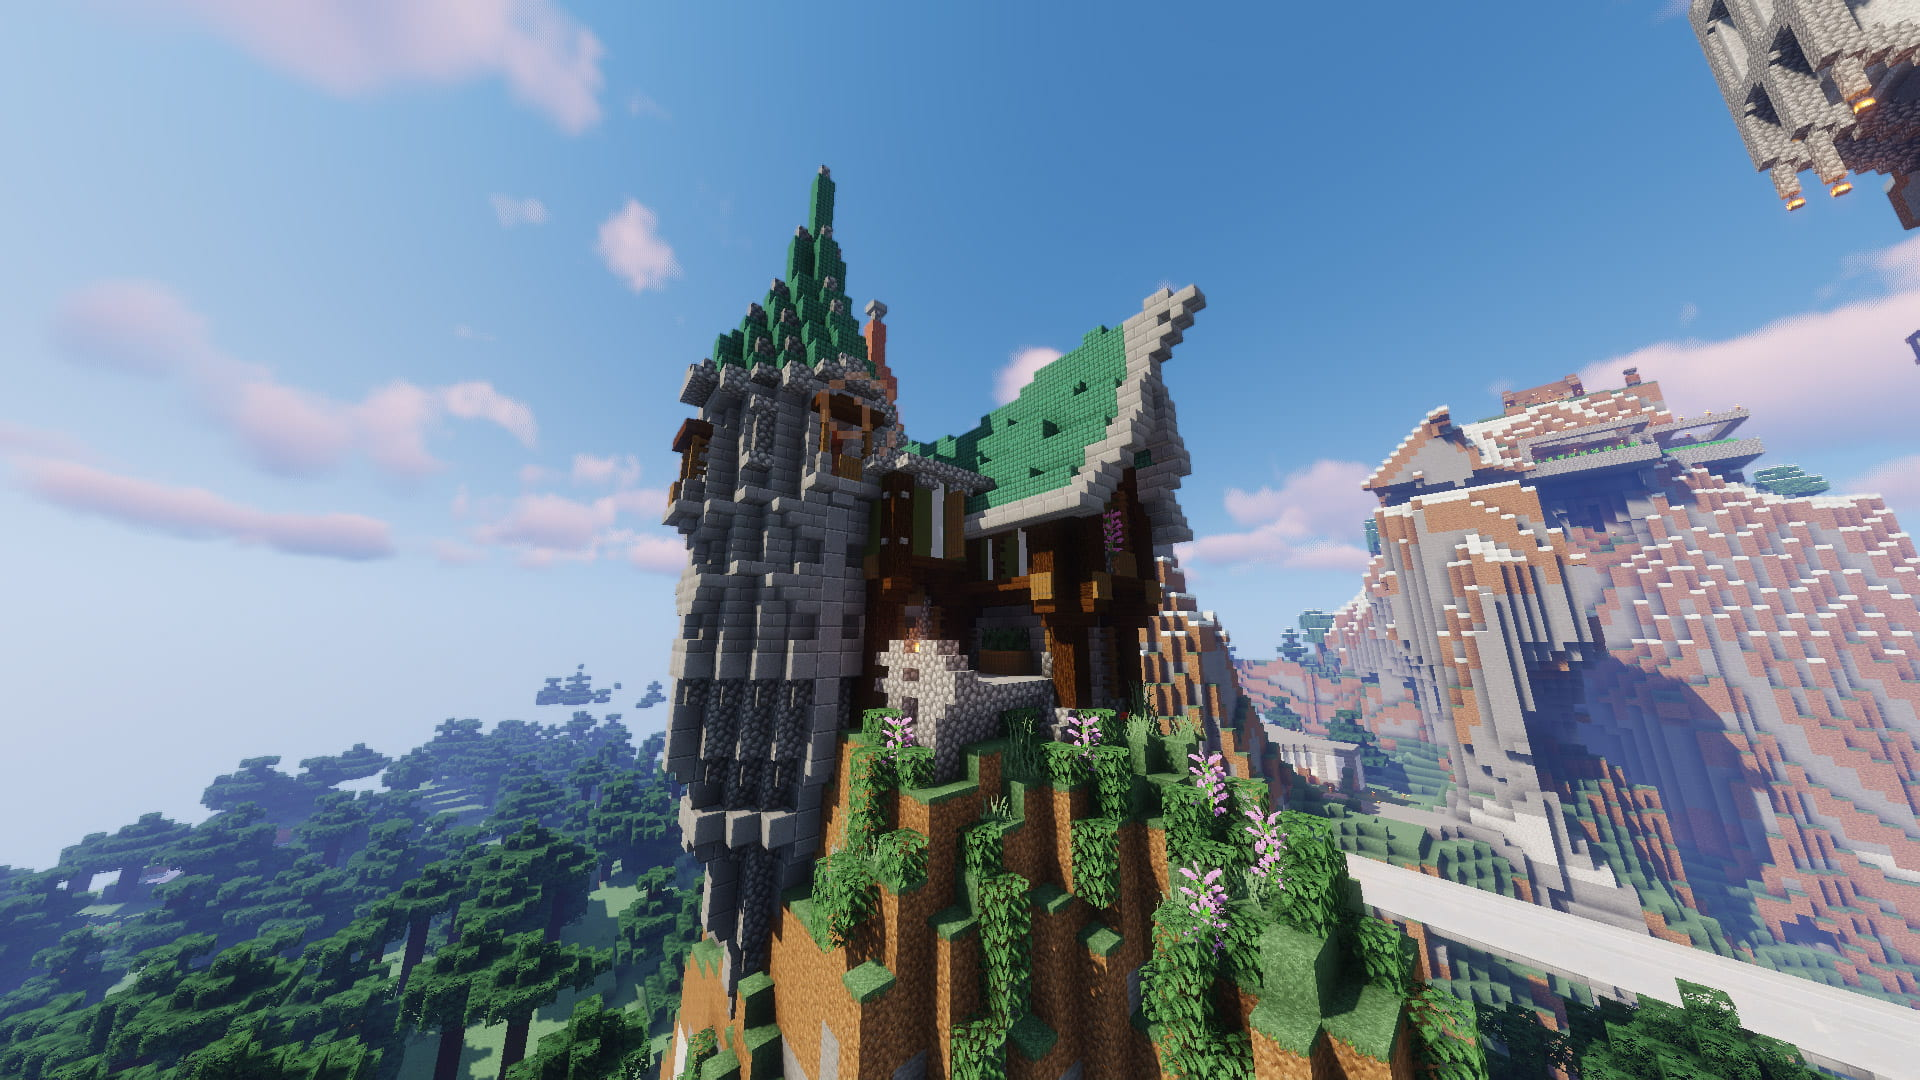 A landscape picture of a Minecraft house with a large expansive forrest landscape behind it